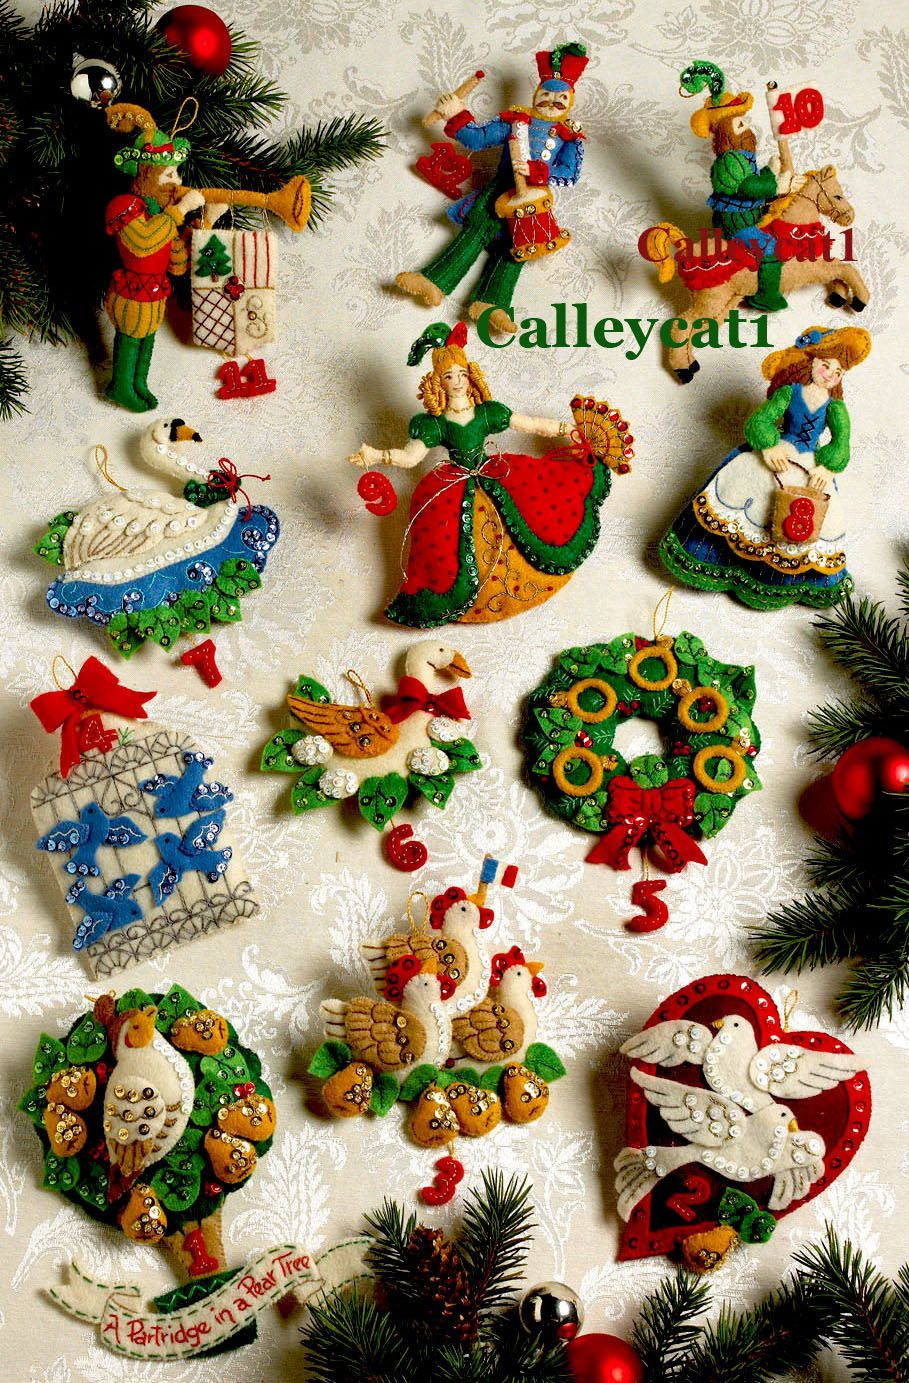 12 Days Of Christmas Bucilla Felt Ornament Kit 86066 Fth Studio International Felt Christmas Ornaments Felt Christmas Christmas Craft Kit